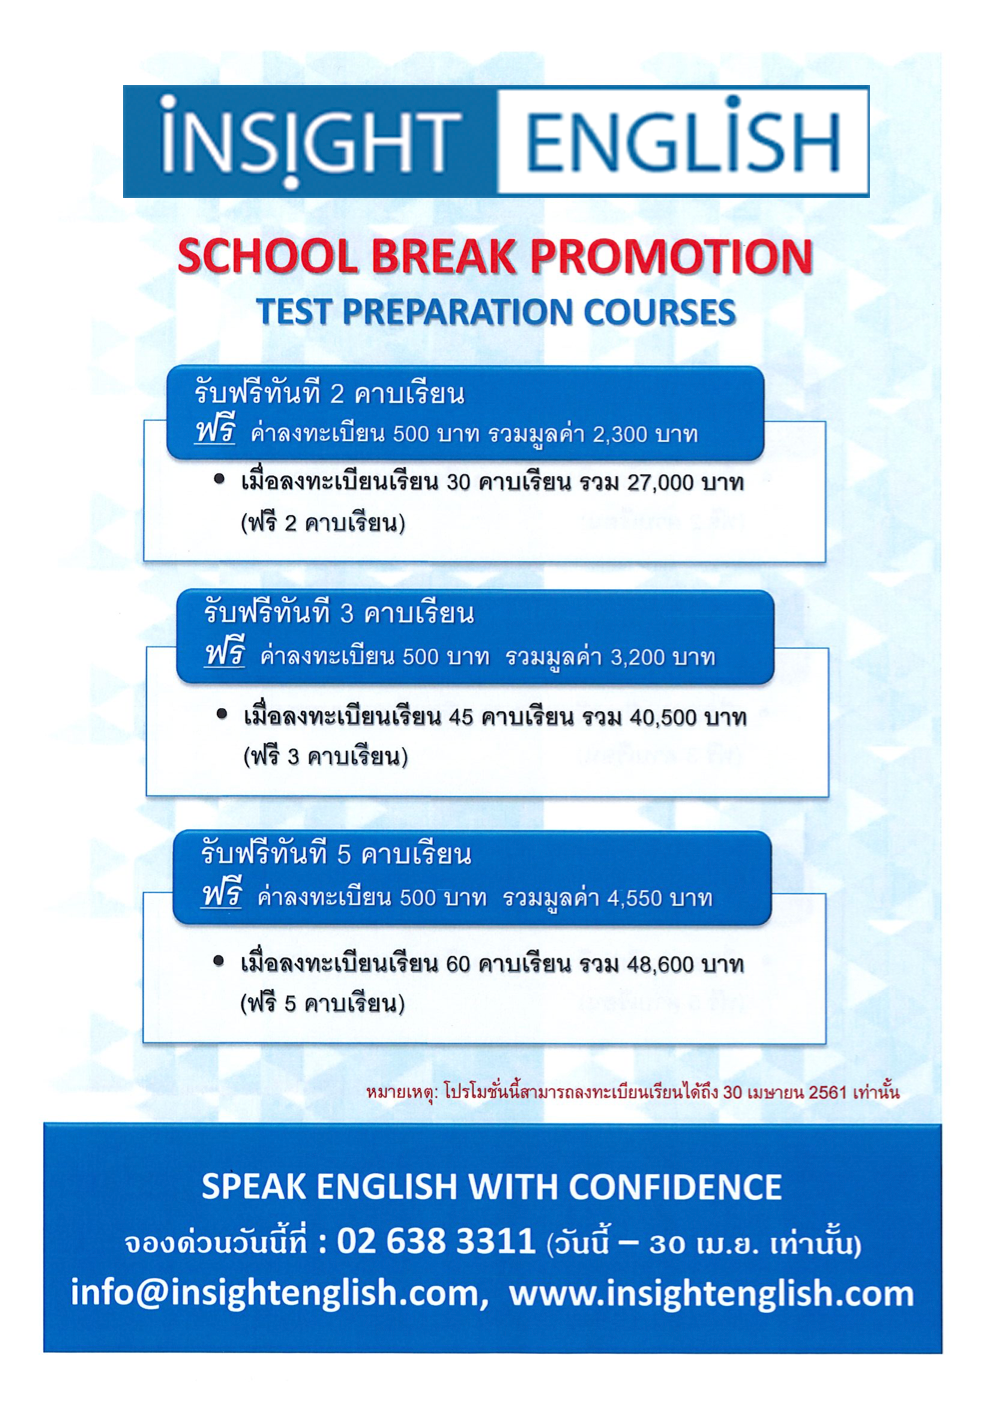 School Break Promotion_2018 - Test Preparation Courses